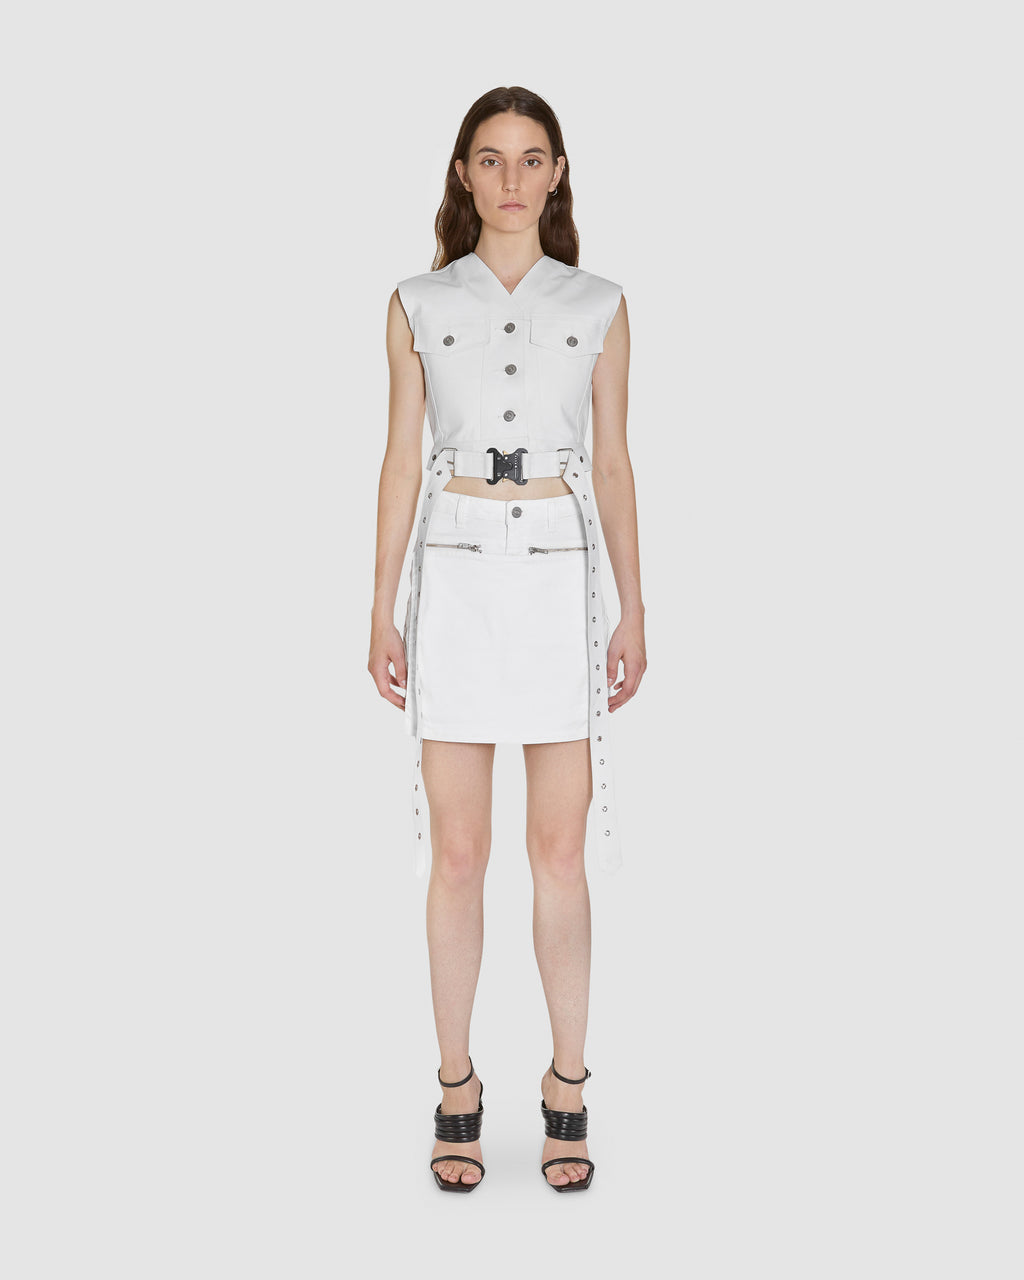 MACKINTOSH CROPPED VEST PRE-ORDER